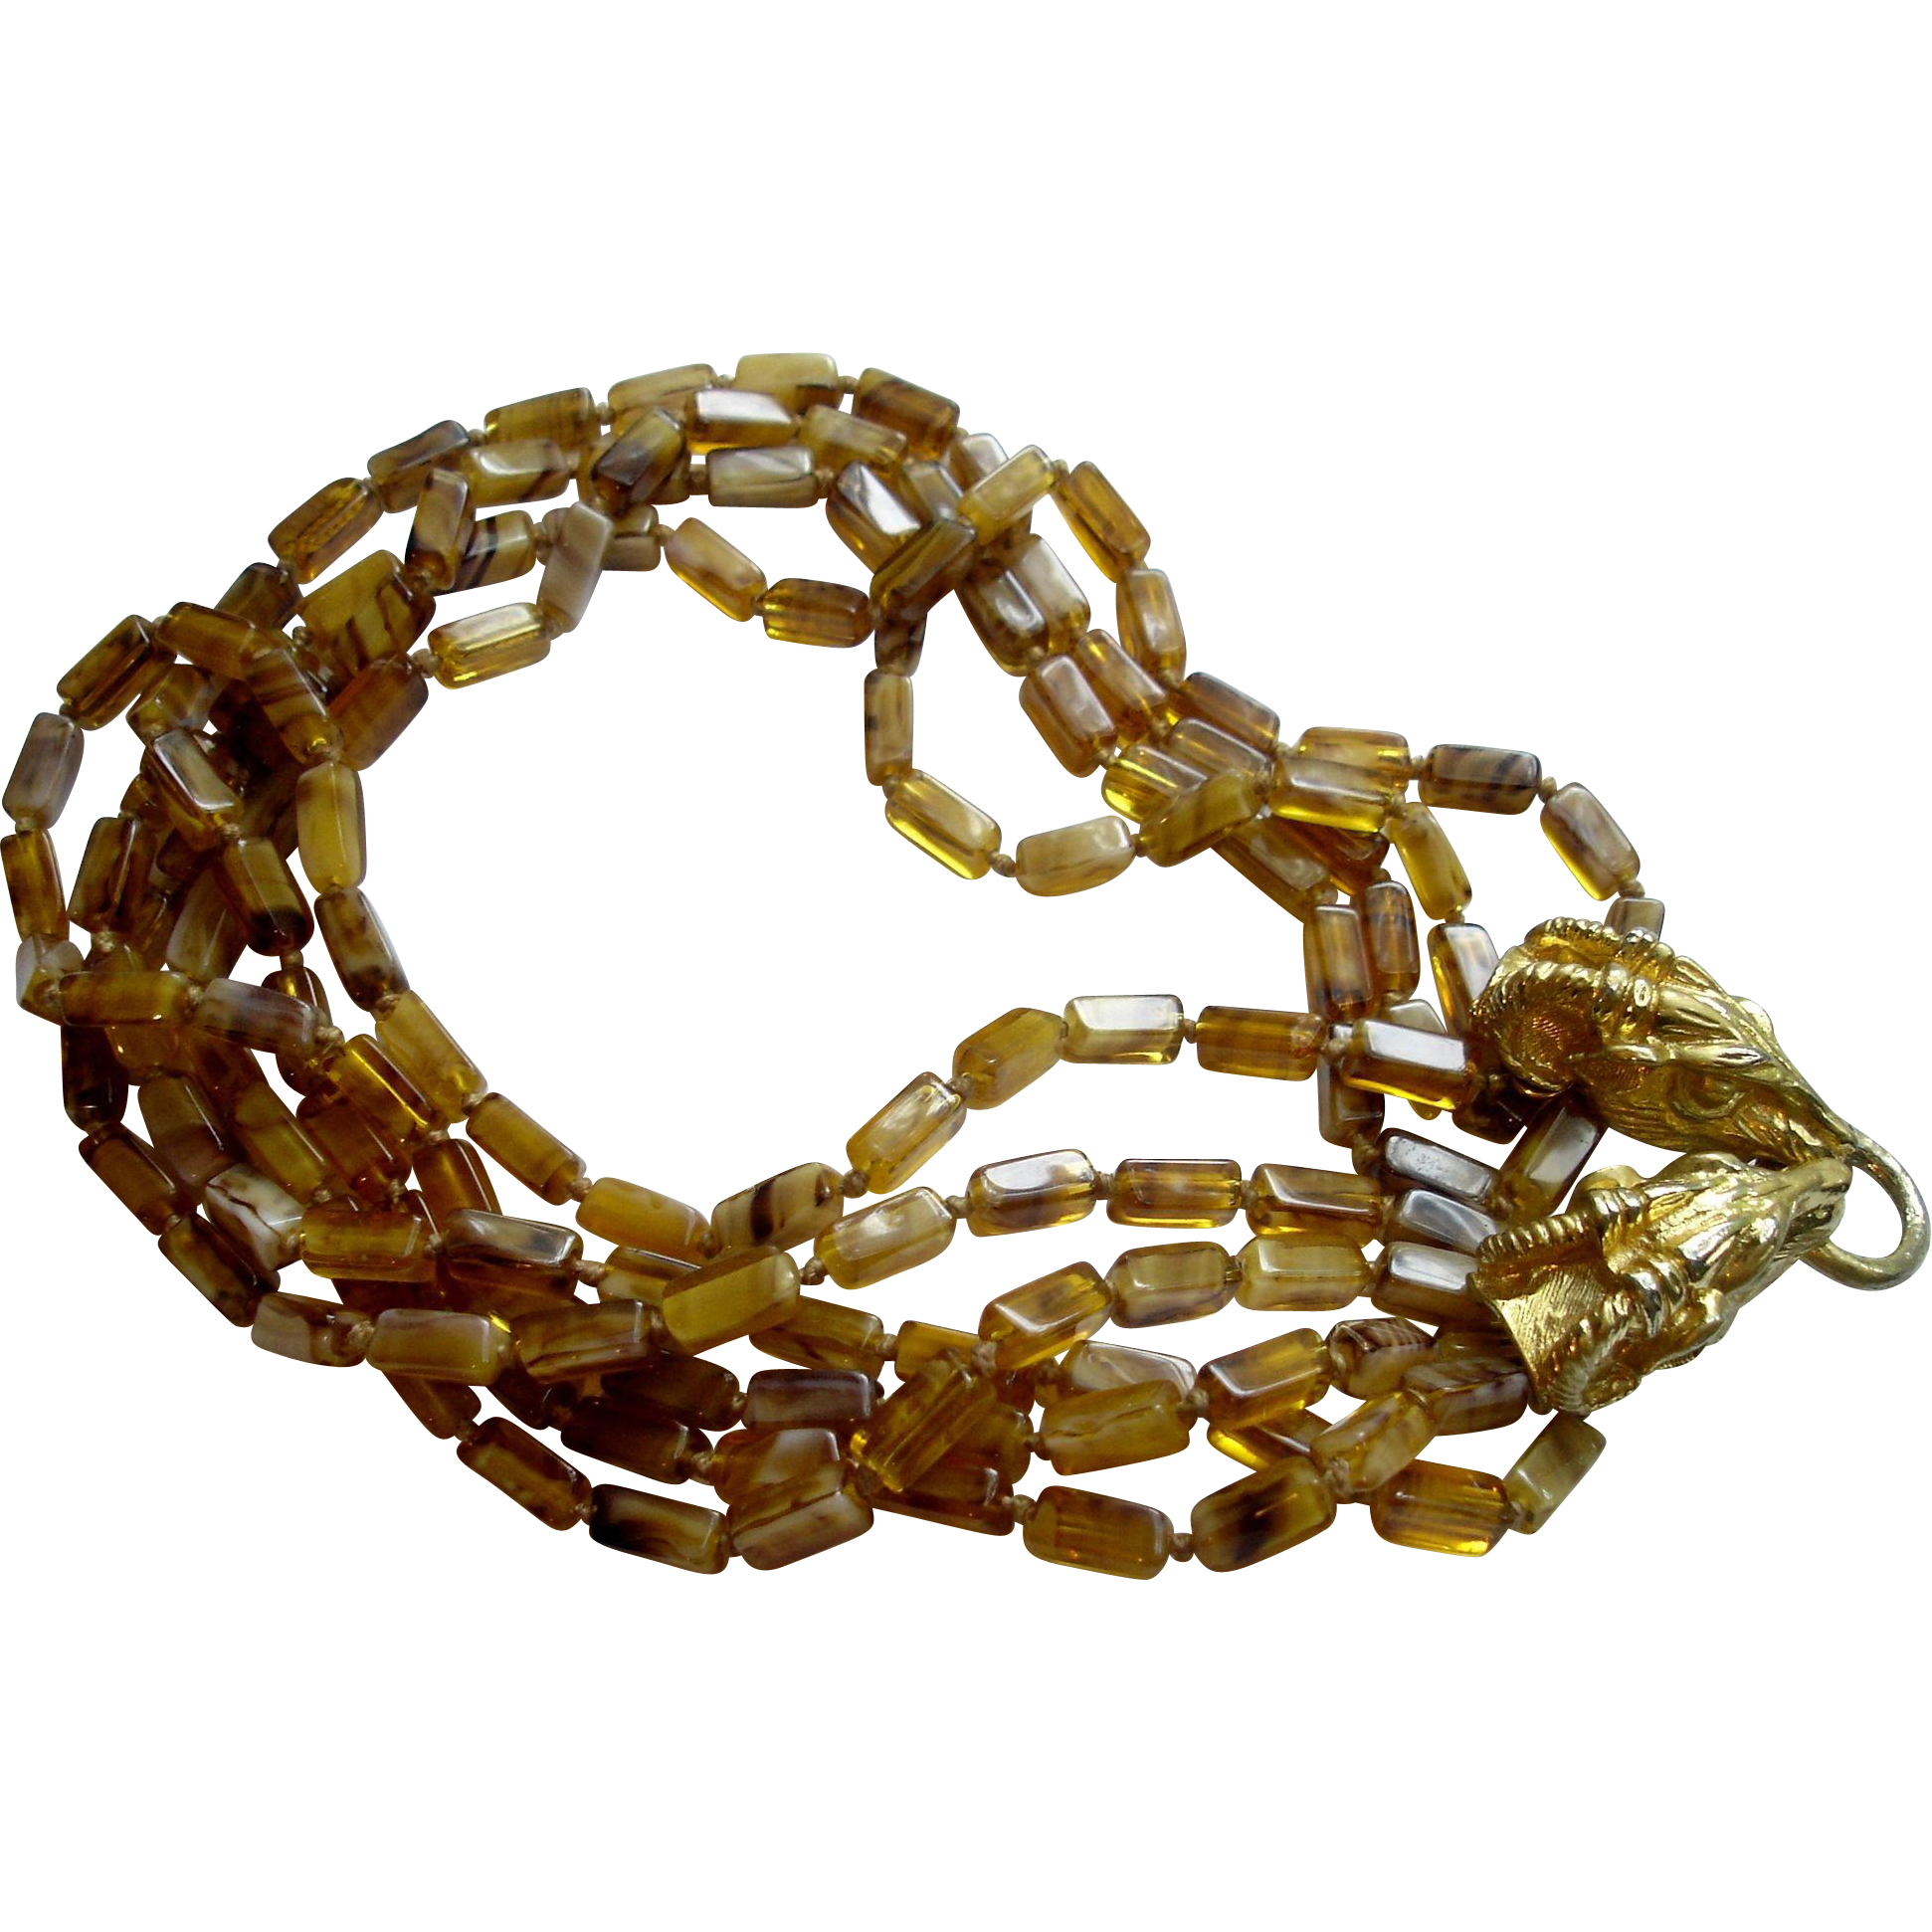 Vintage Donald Stannard (for KJL) Tortoise Glass and Rams Head Necklace, circa 1960-70's